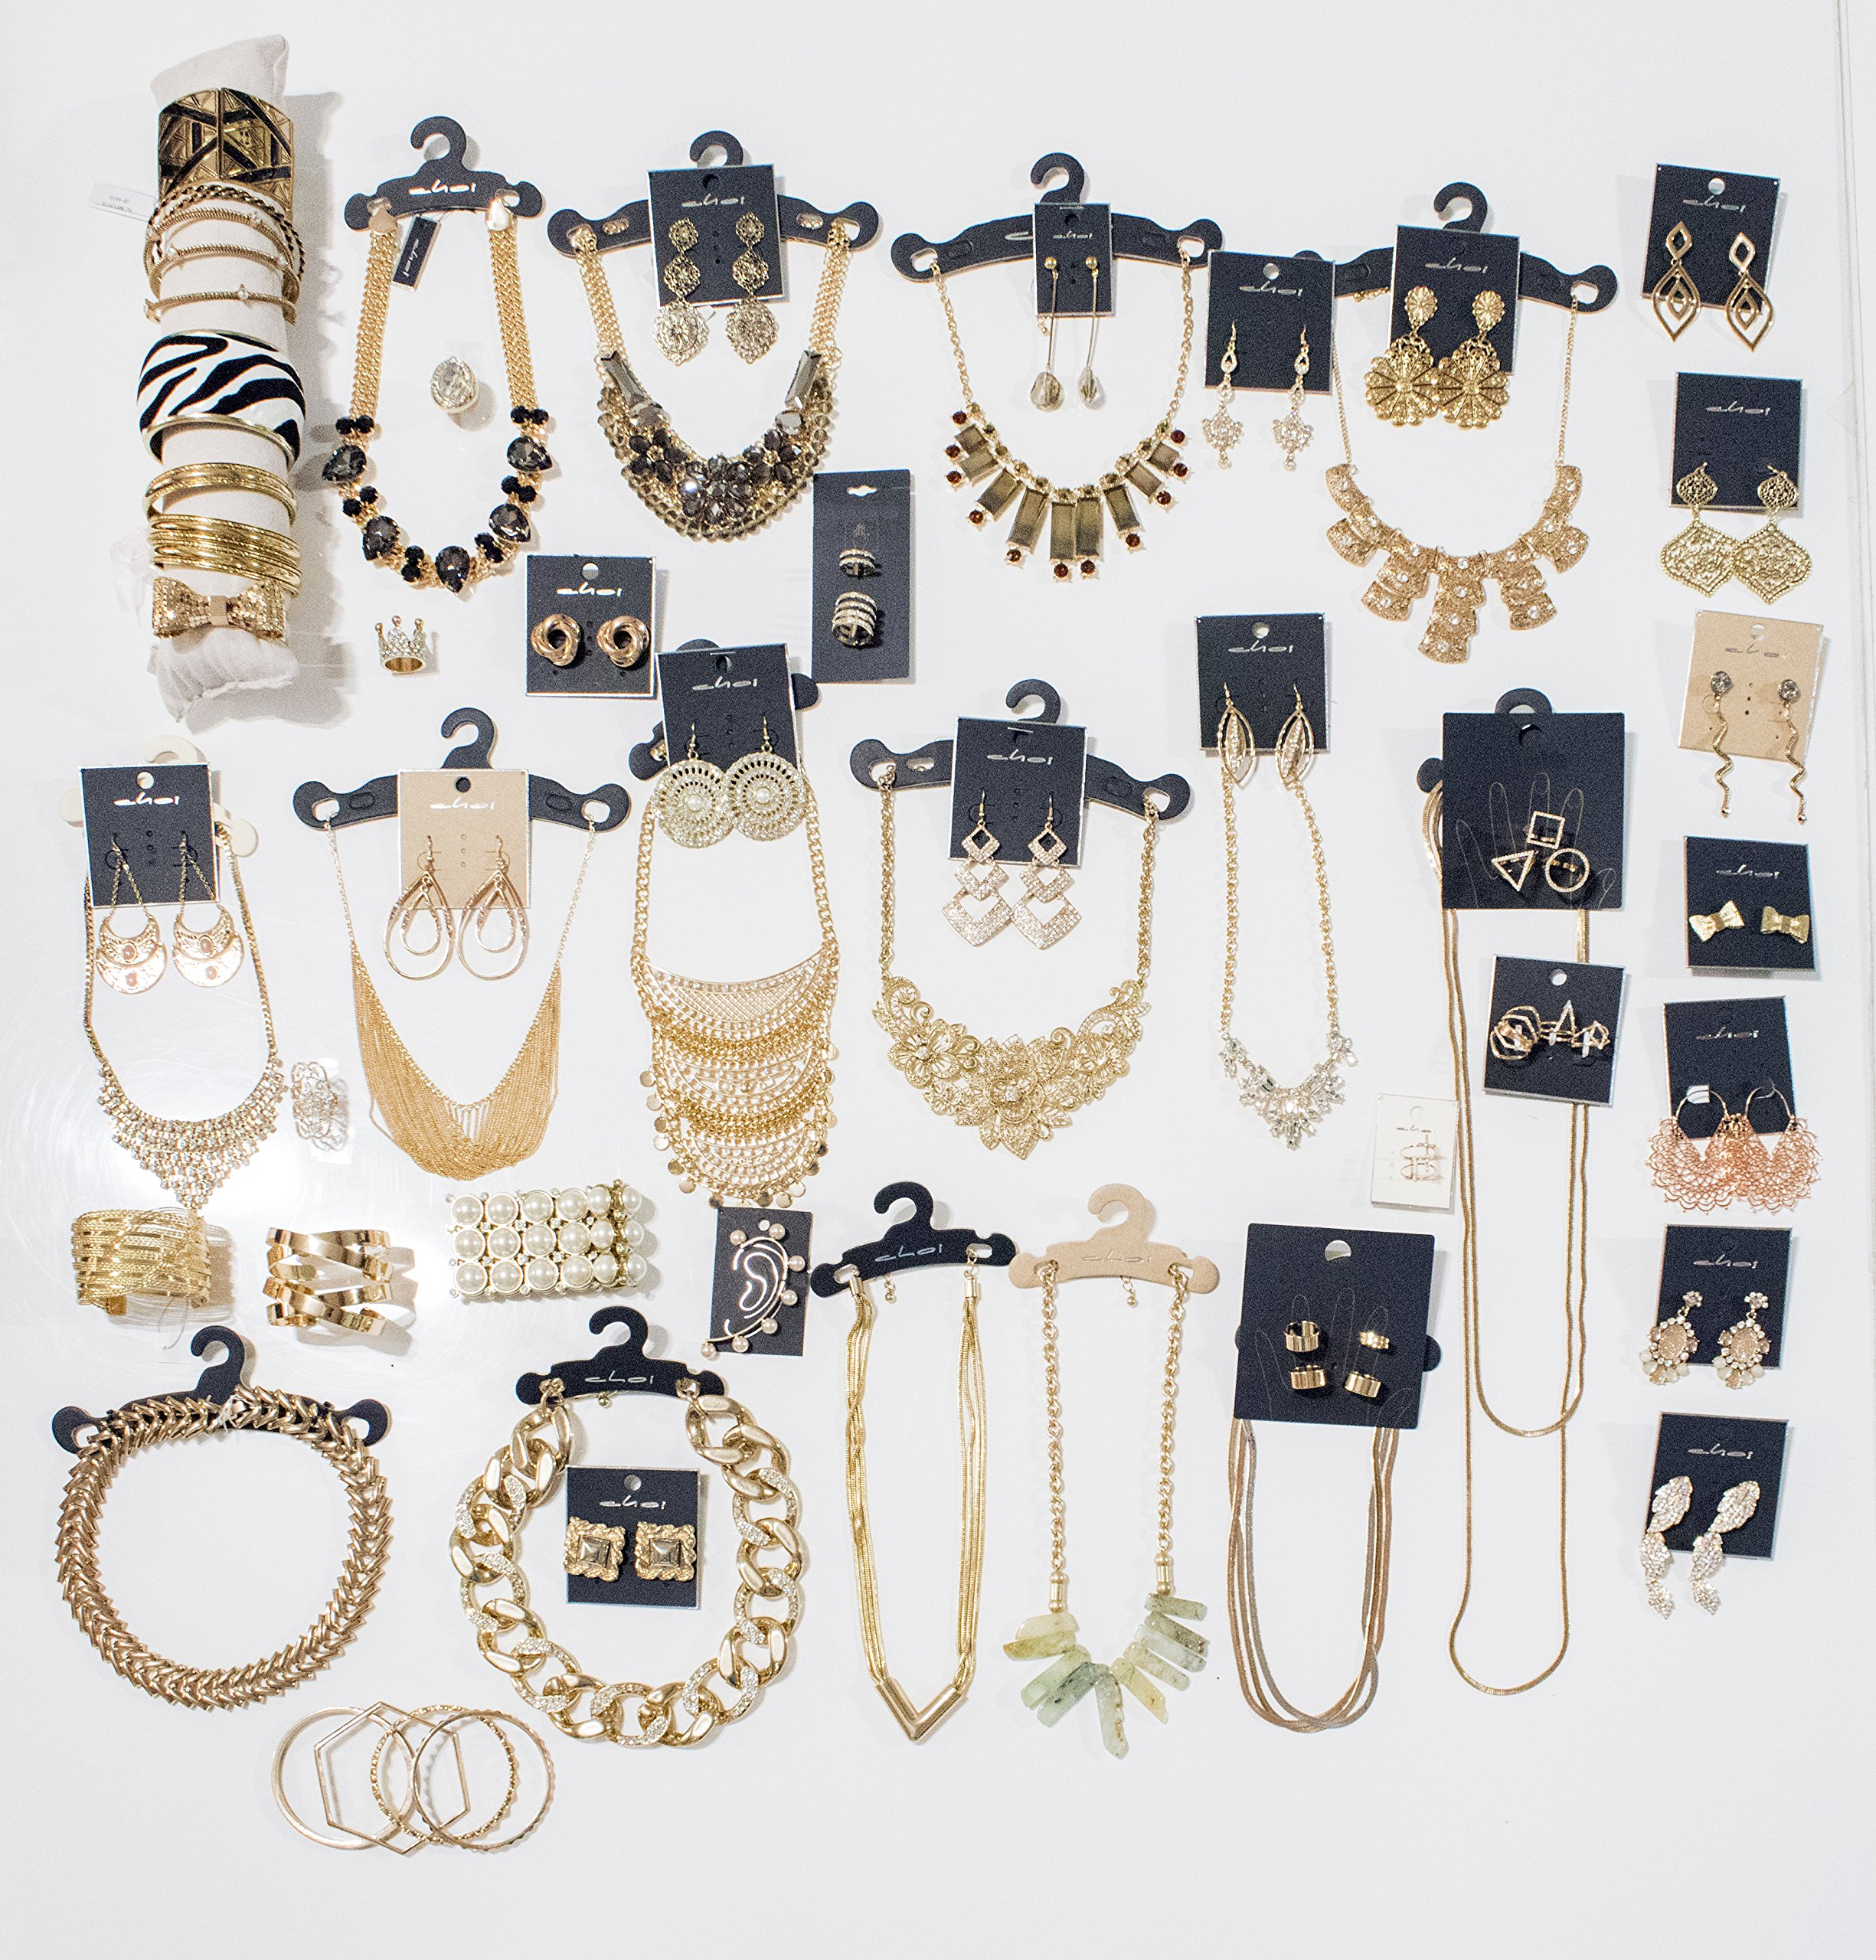 Choice by Choi Fashion Jewelry Assorted Gold & Silver, Bulk for Wholesale, Assorted Bracelet, Necklace, Earrings, Rings & Strand made of Zinc, Steel, Brass by (100 PCS Assorted) by Choice by Choi (Image #4)